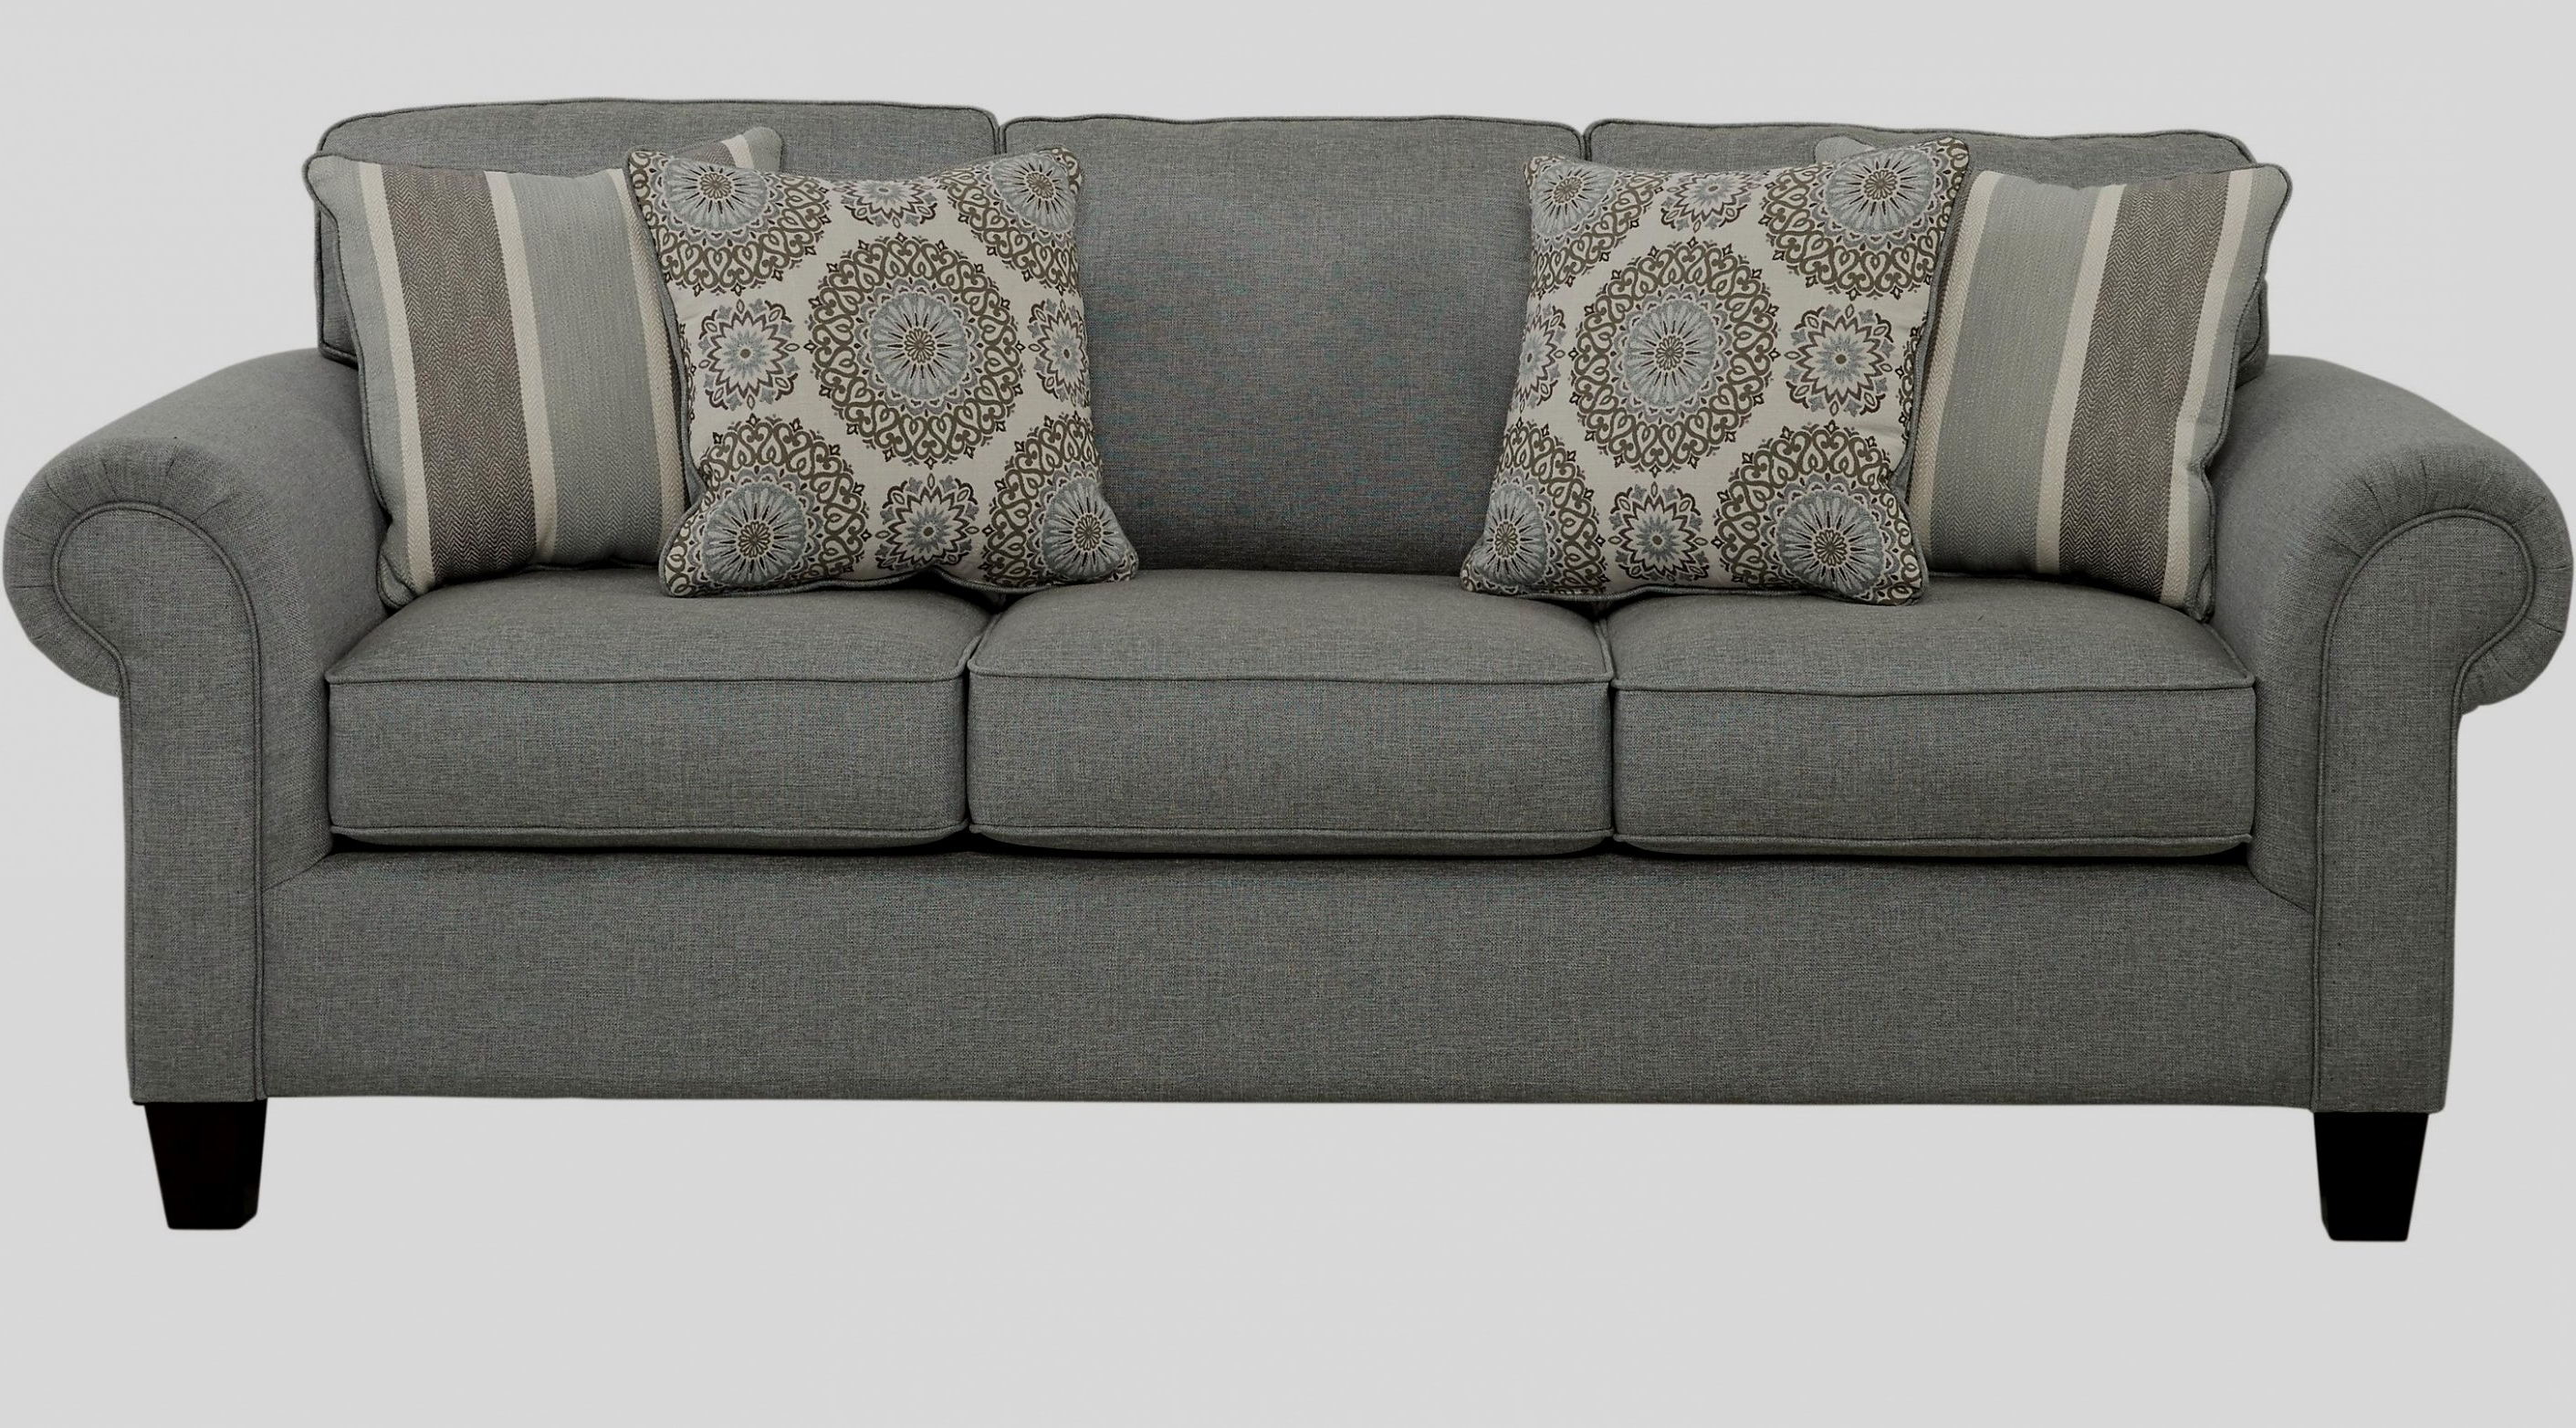 Outlet sofas Online Tldn sofas Online Outlet Especial sofa Mit Led Yct Projekte Busco Sillas